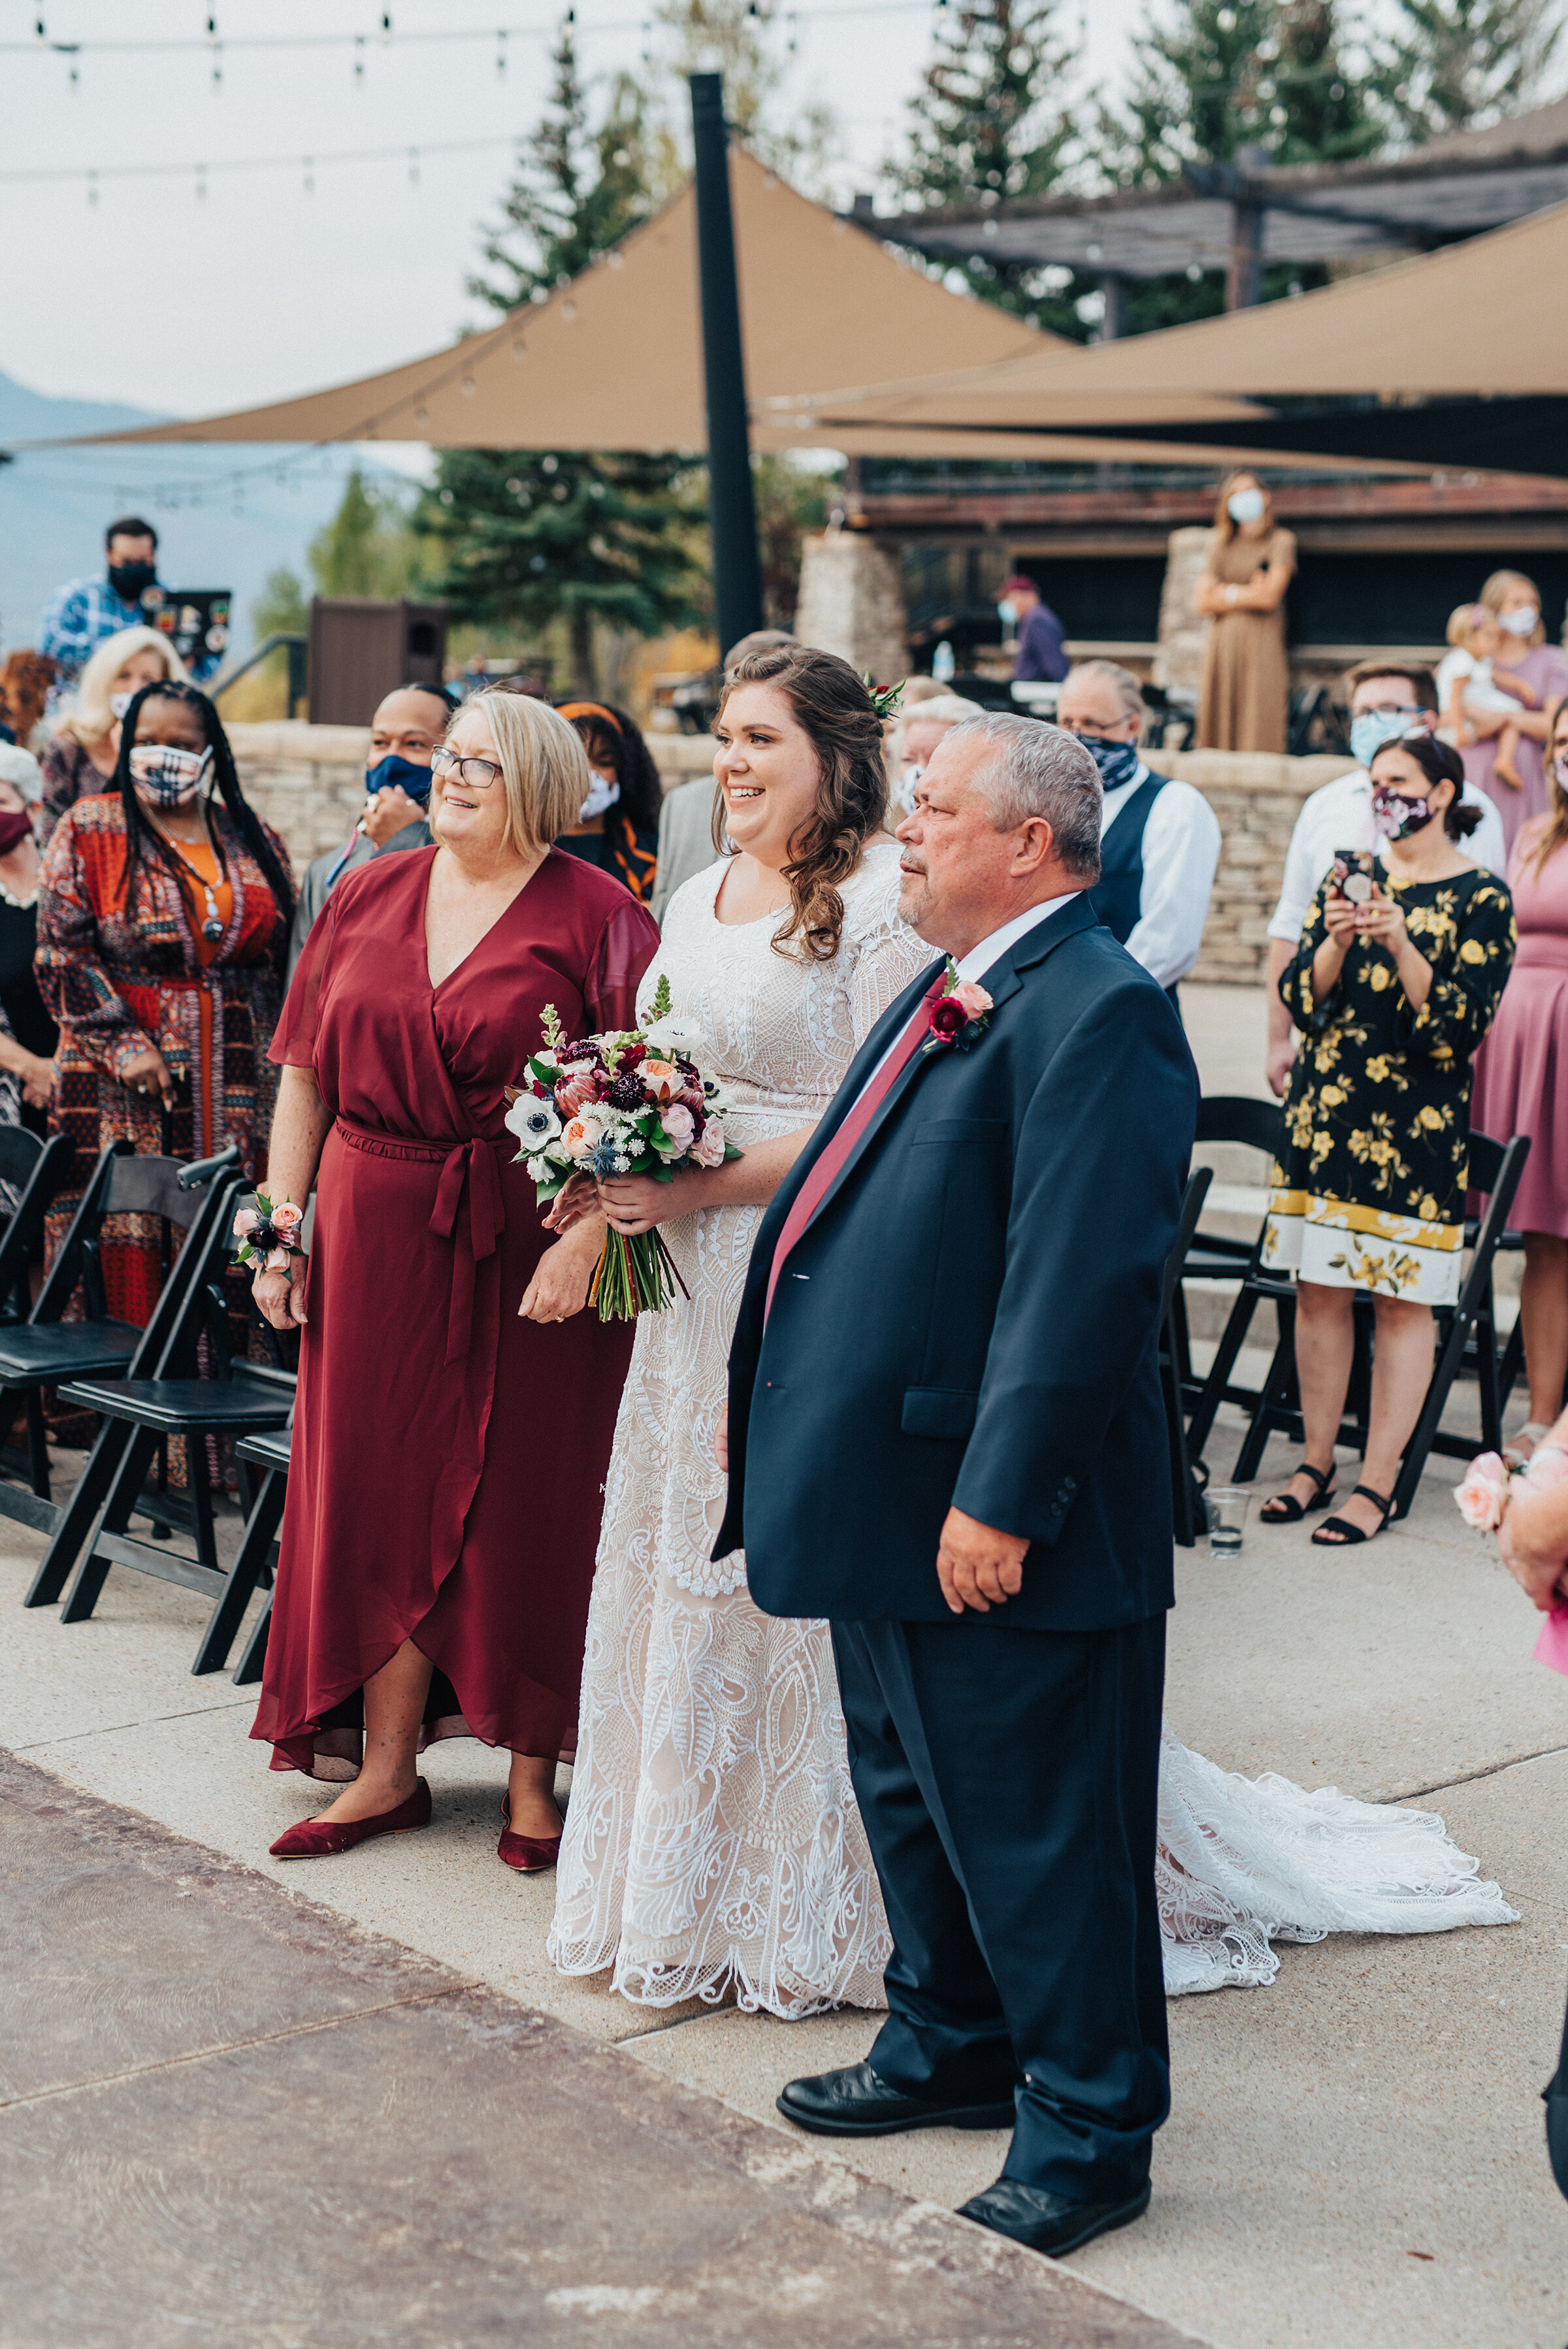 Beautiful bride with her parents before the wedding ceremony in northern Utah captured by Kristi Alyse Photography. Wedding day photography captures family mother daughter father wedding ceremony logan Utah bride meaningful moments classy floral bouquet quality images #weddinginspo #loganutah #brideandgroom #utahbride#utahweddingphotographer #meaningfulmoment #weddingphotography #northernutahwedding #weddinghairstyles #weddingday #bridals